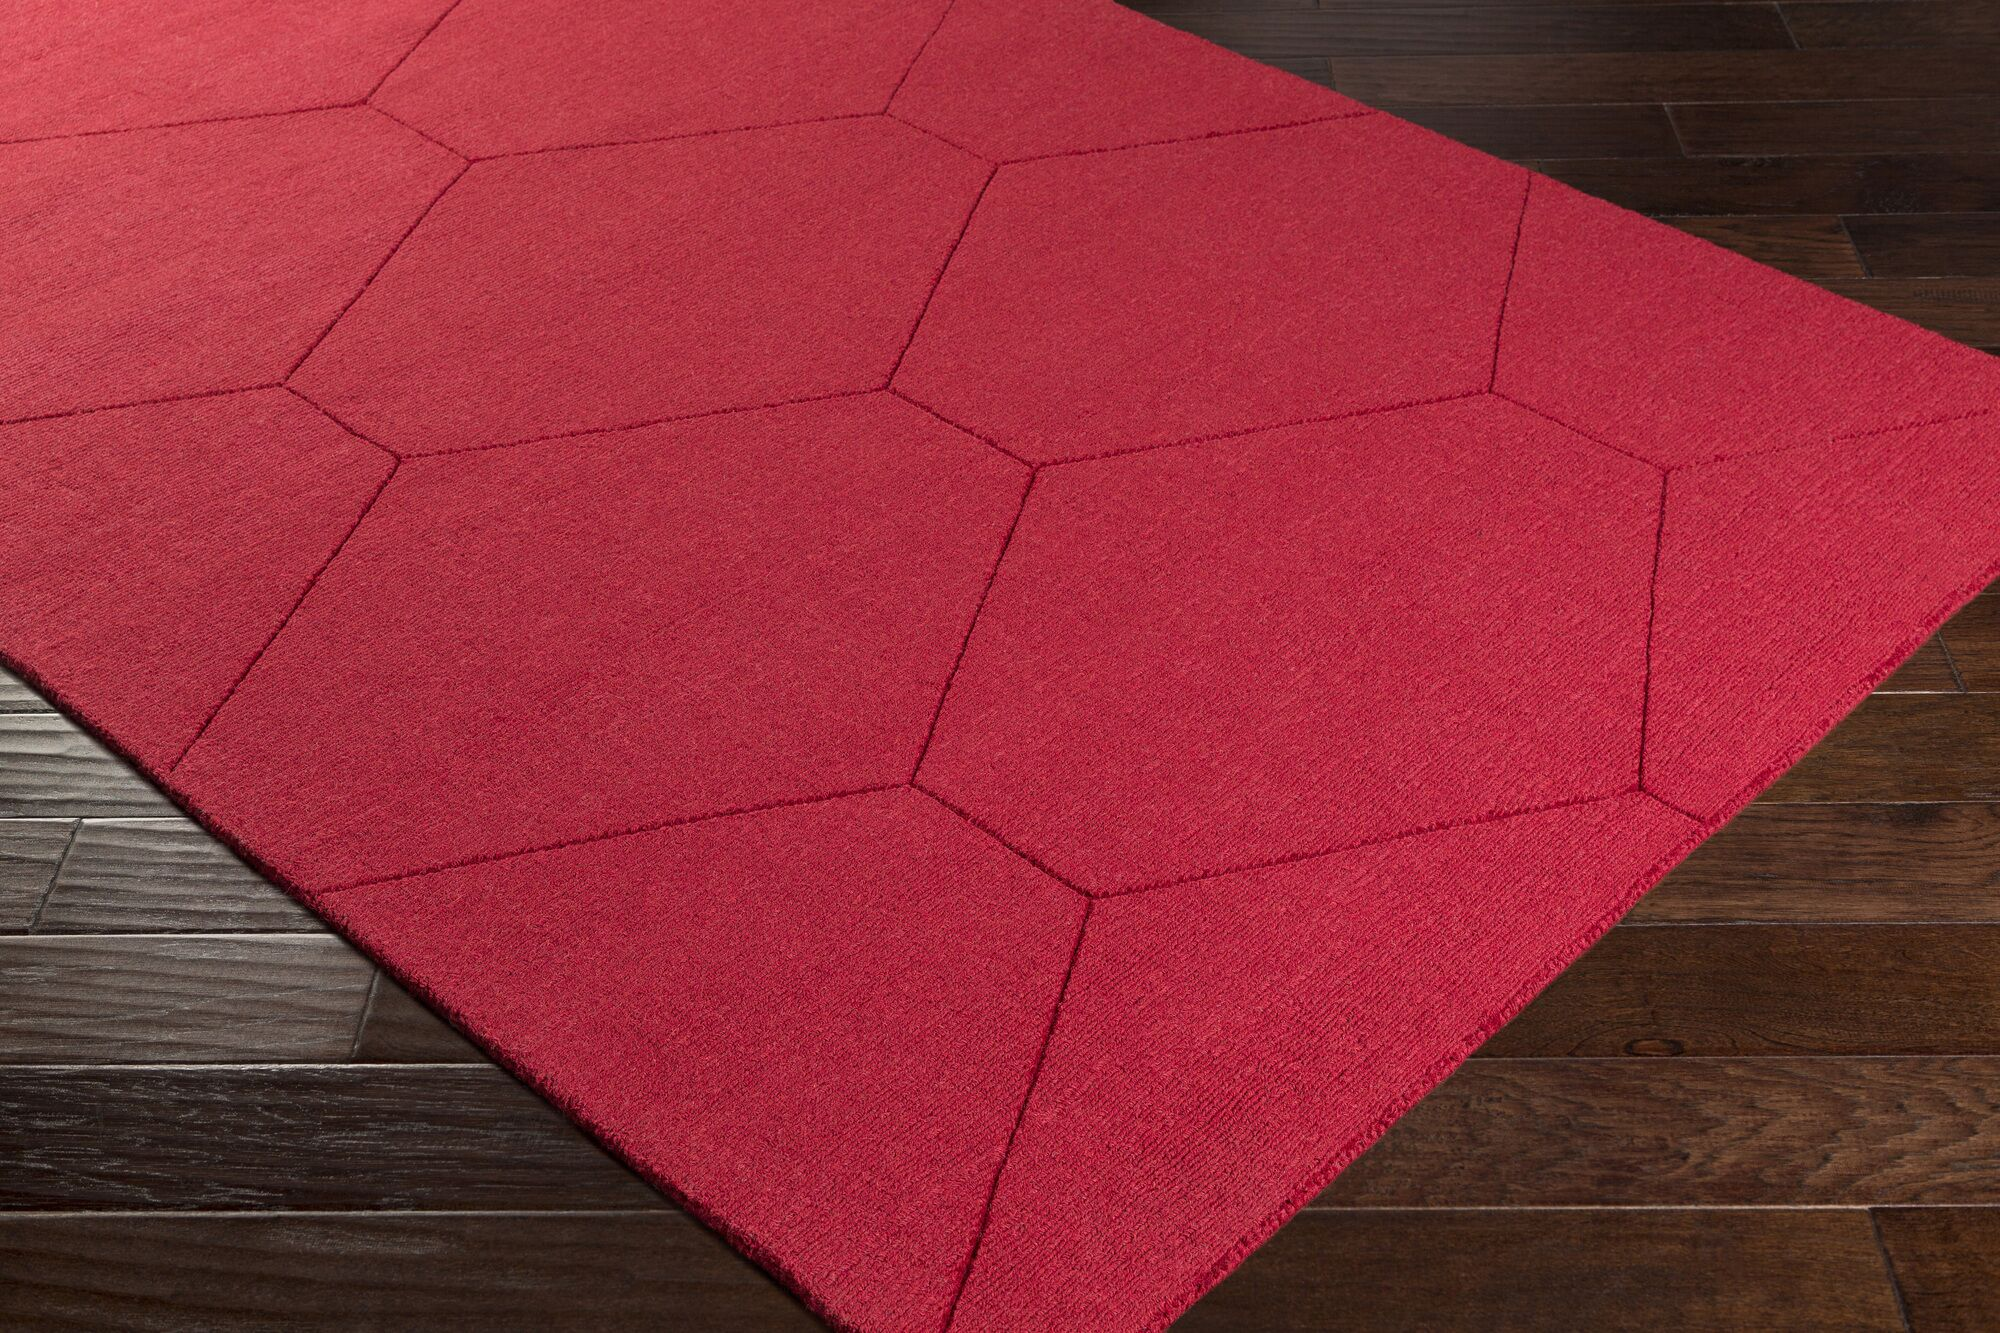 Pulcova Hand Woven Wool Dark Red Area Rug Rug Size: Rectangle 2' x 3'